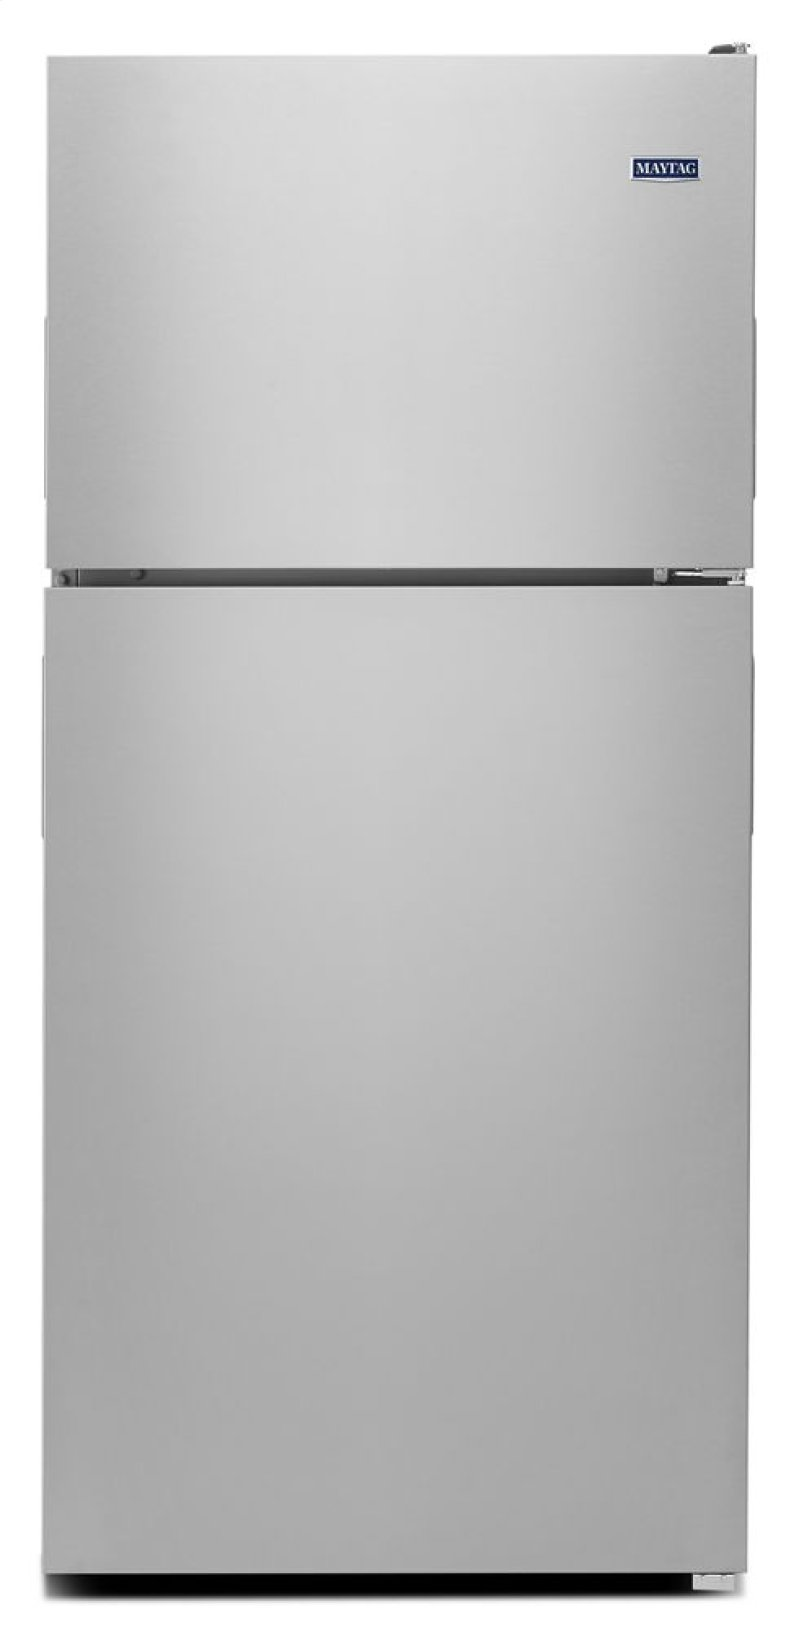 Mrt311fffm In Monochromatic Stainless Steel By Maytag Shelbina Washer Parts Diagram Group Picture Image Tag 33 Inch Wide Top Freezer Refrigerator With Powercold Feature 21 Cu Ft